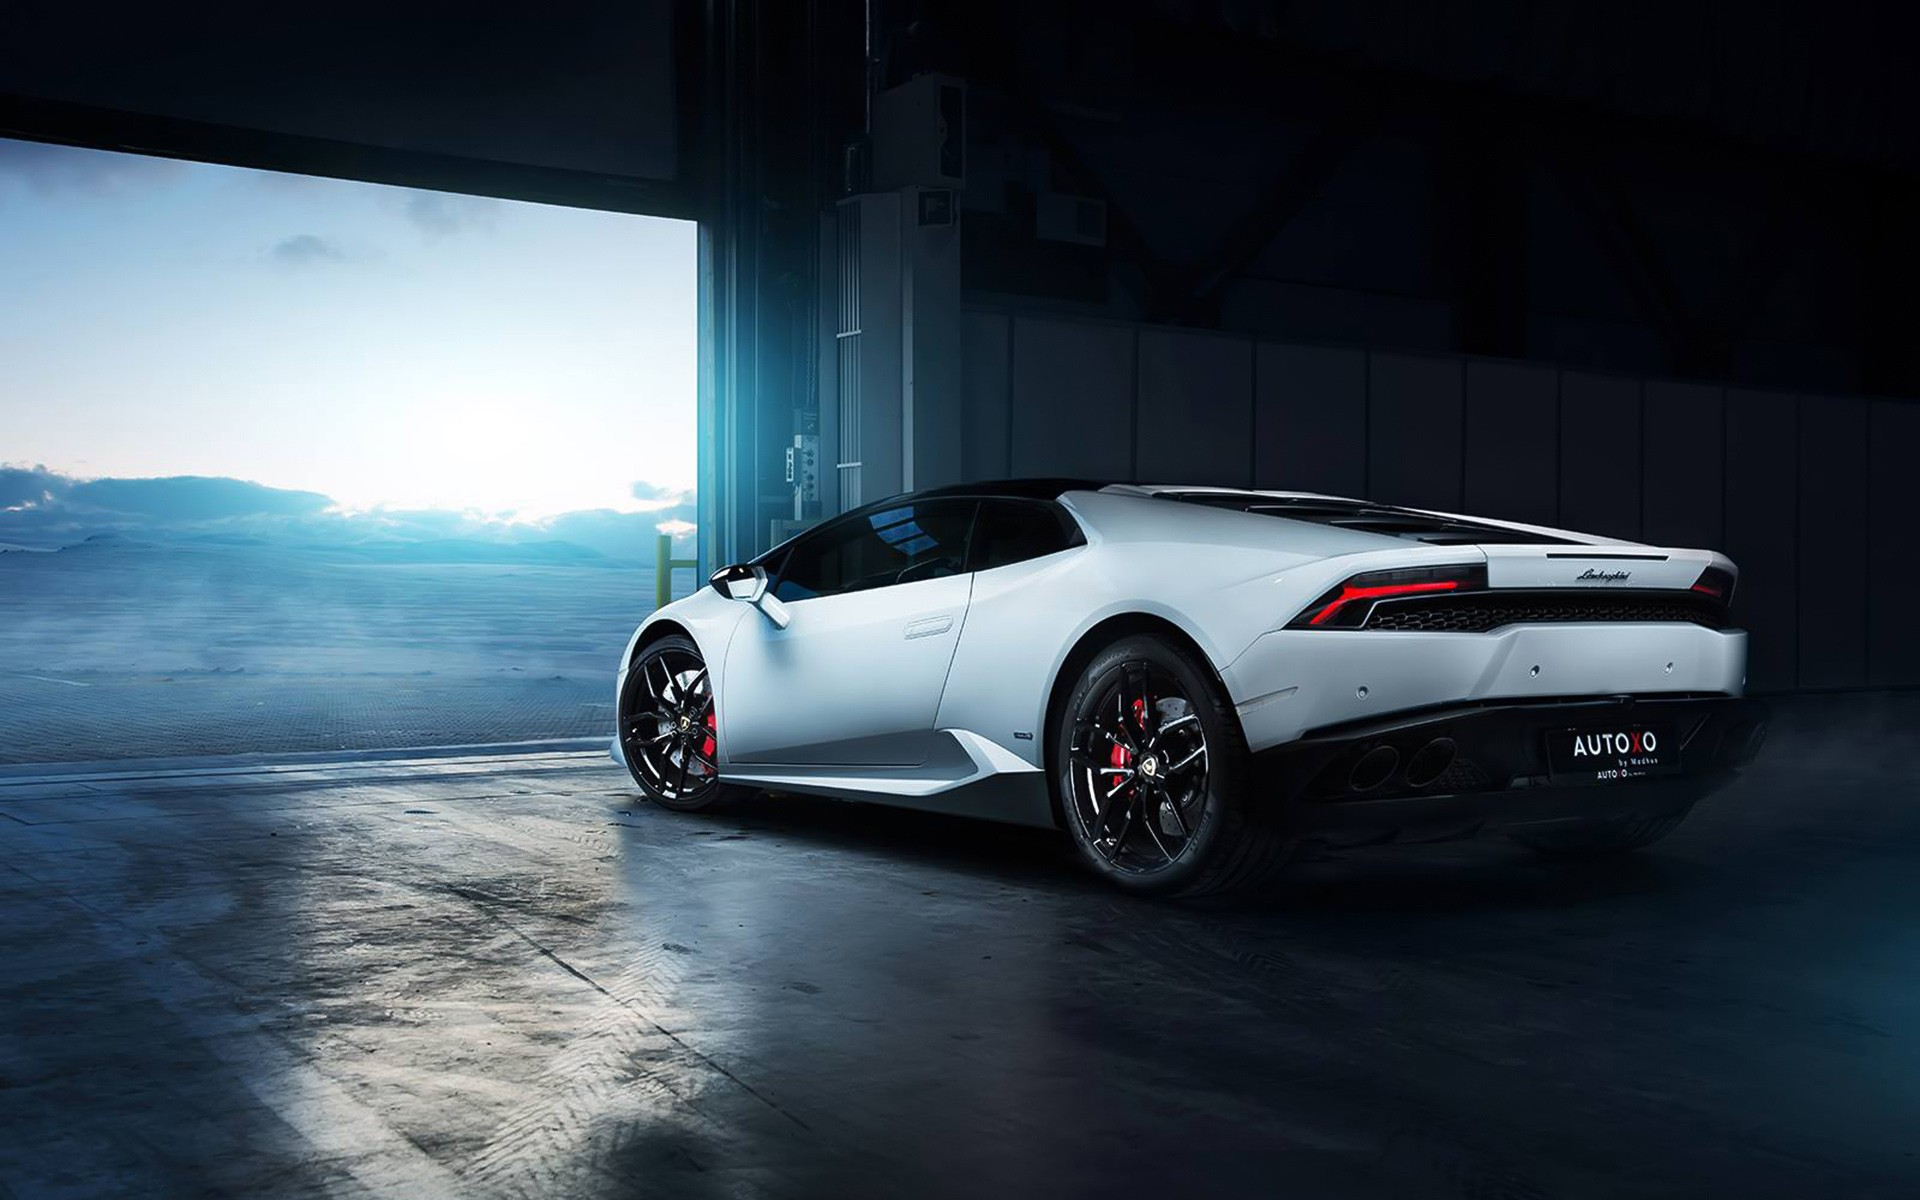 Lamborghini Huracan Lp610 4 Wallpaper Hd Car Wallpapers